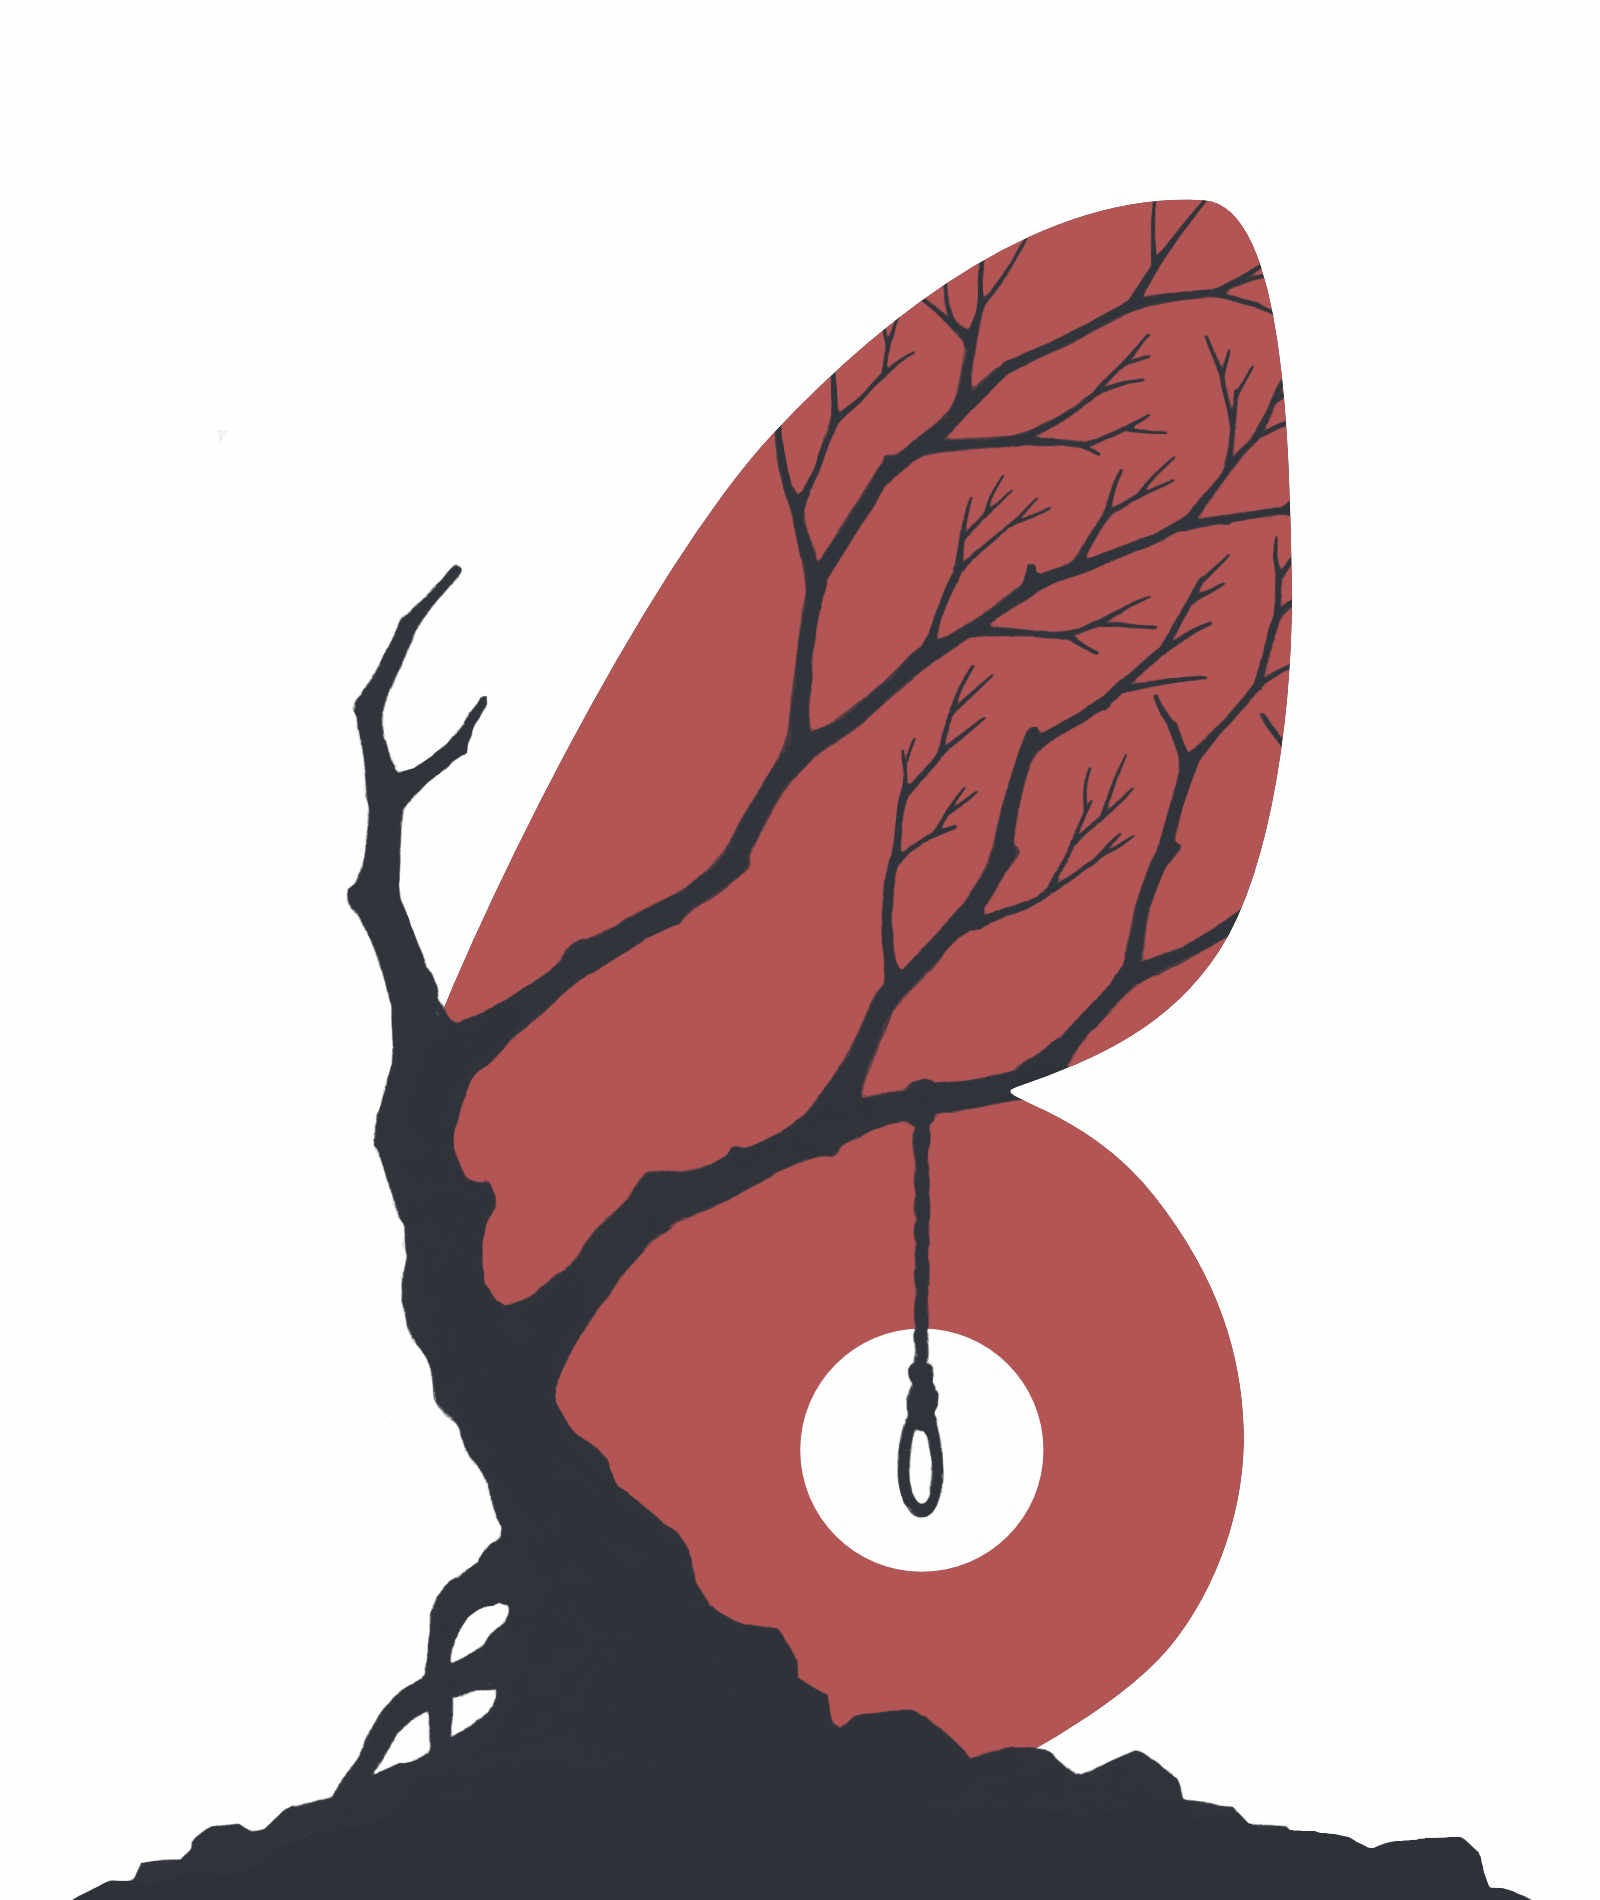 book cover: a silhouette of an old, crooked, leafless tree with a noose hanging off one of its branches; the red sky behind it is cropped in the form of a butterfly wing, making the tree trunk look like the body of a butterfly and its branches like the pattern of butterfly wings